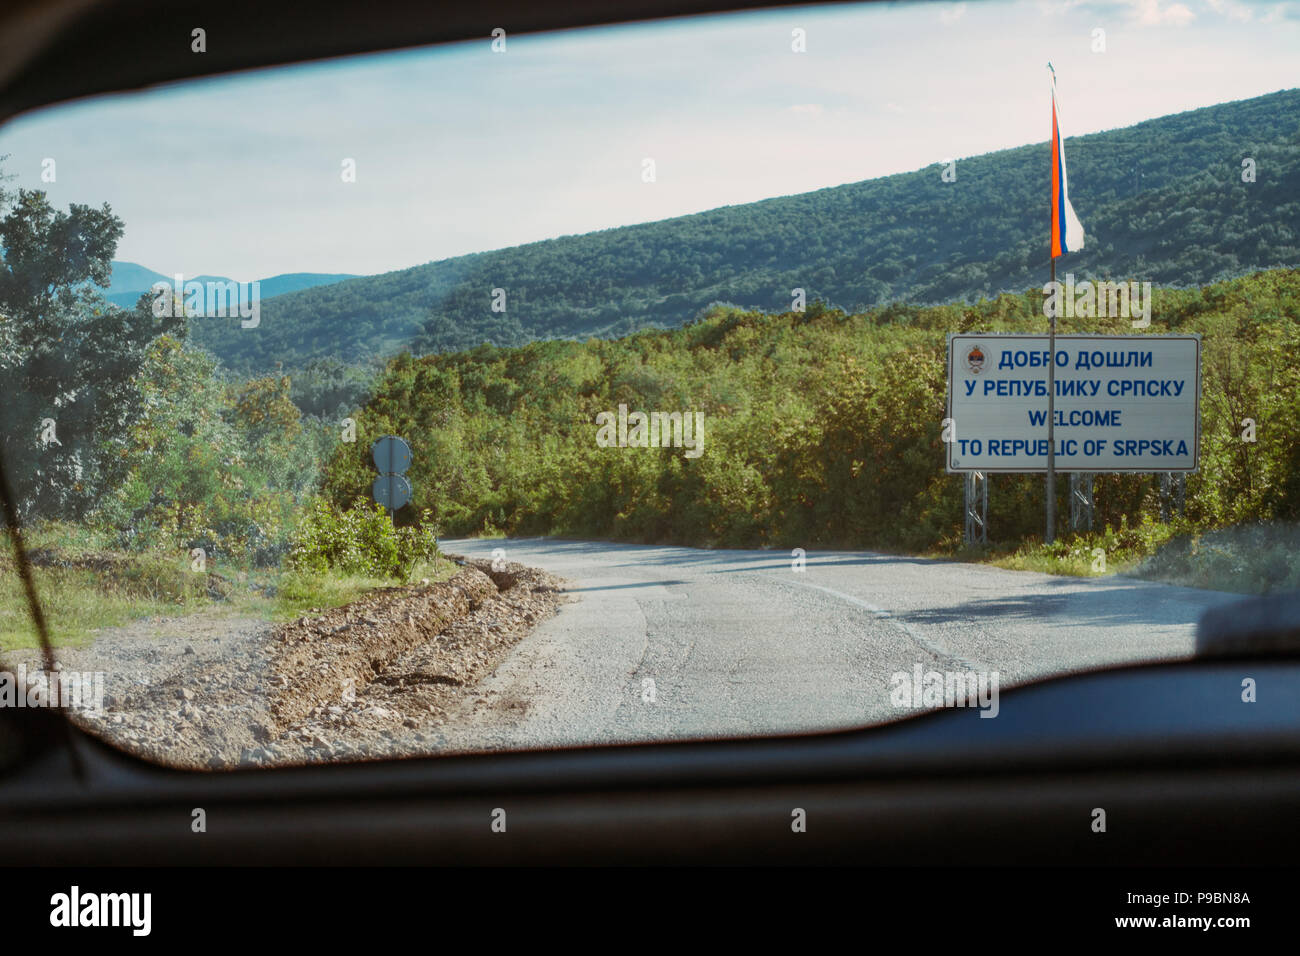 The view out the rear window of a car crossing the border leaving Republic of Srpska, Bosnia and Herzegovina - Stock Image